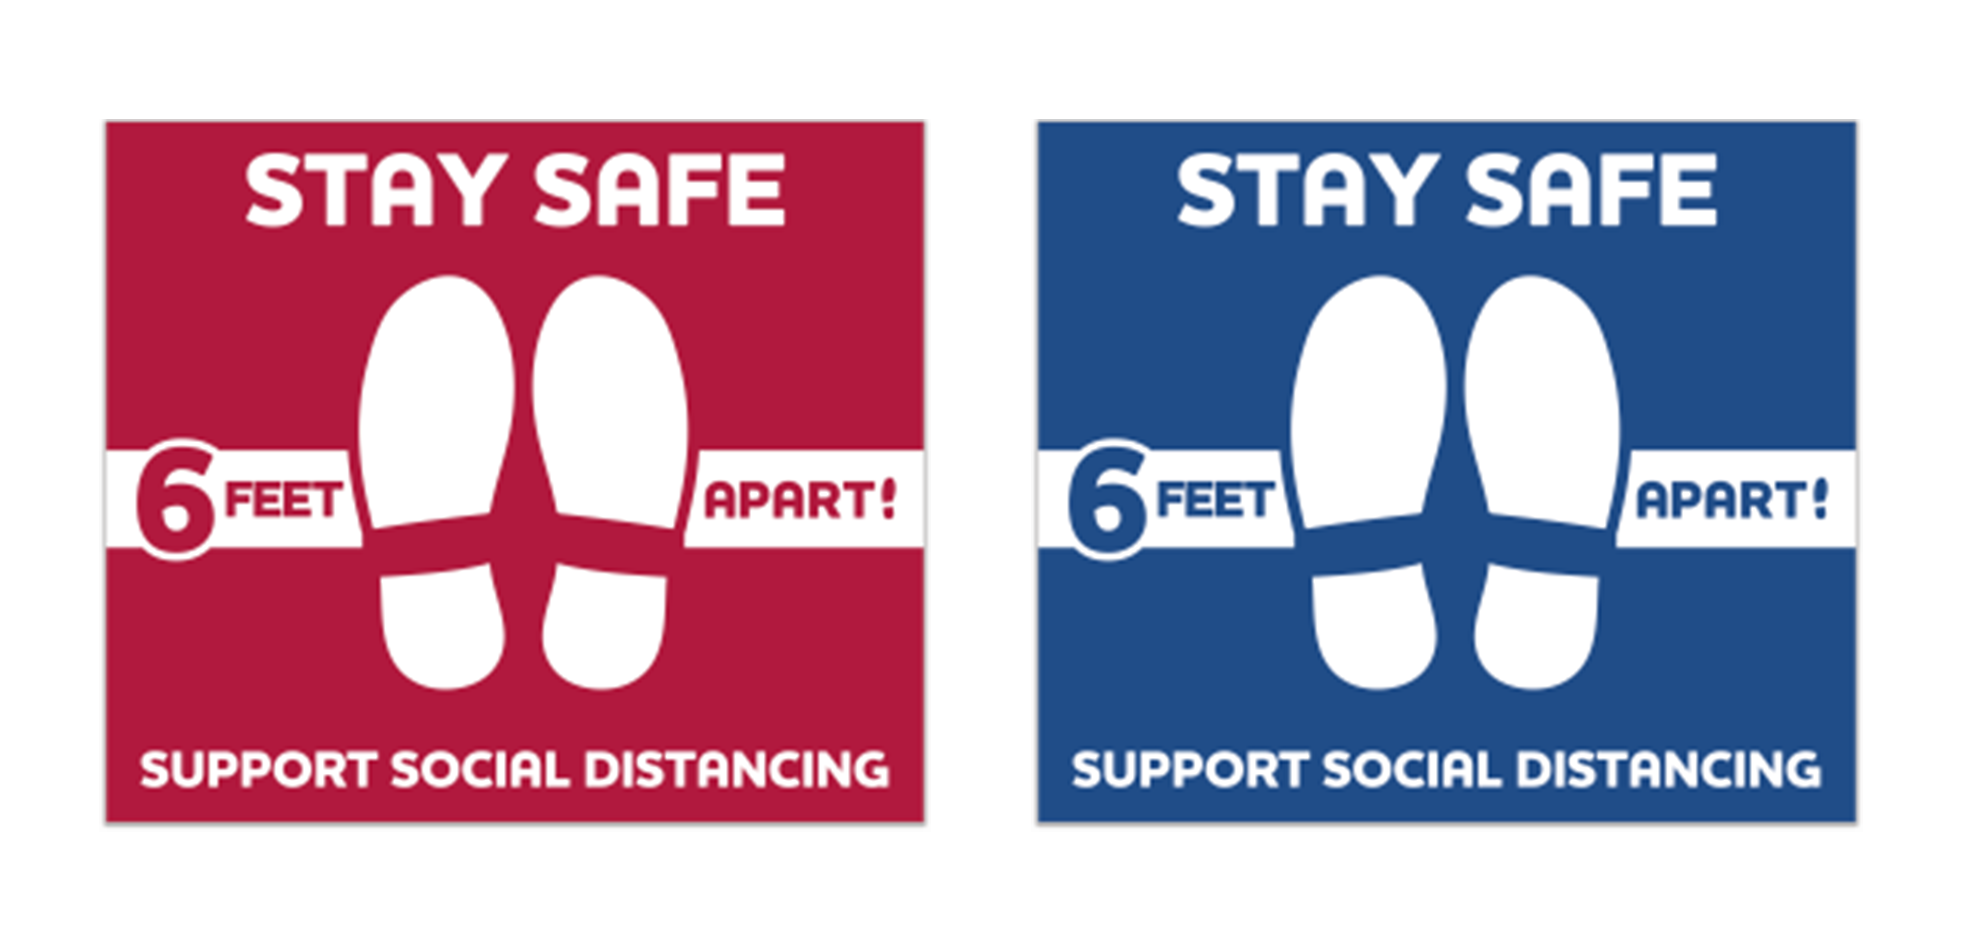 Stay Safe Floor Decals - Square